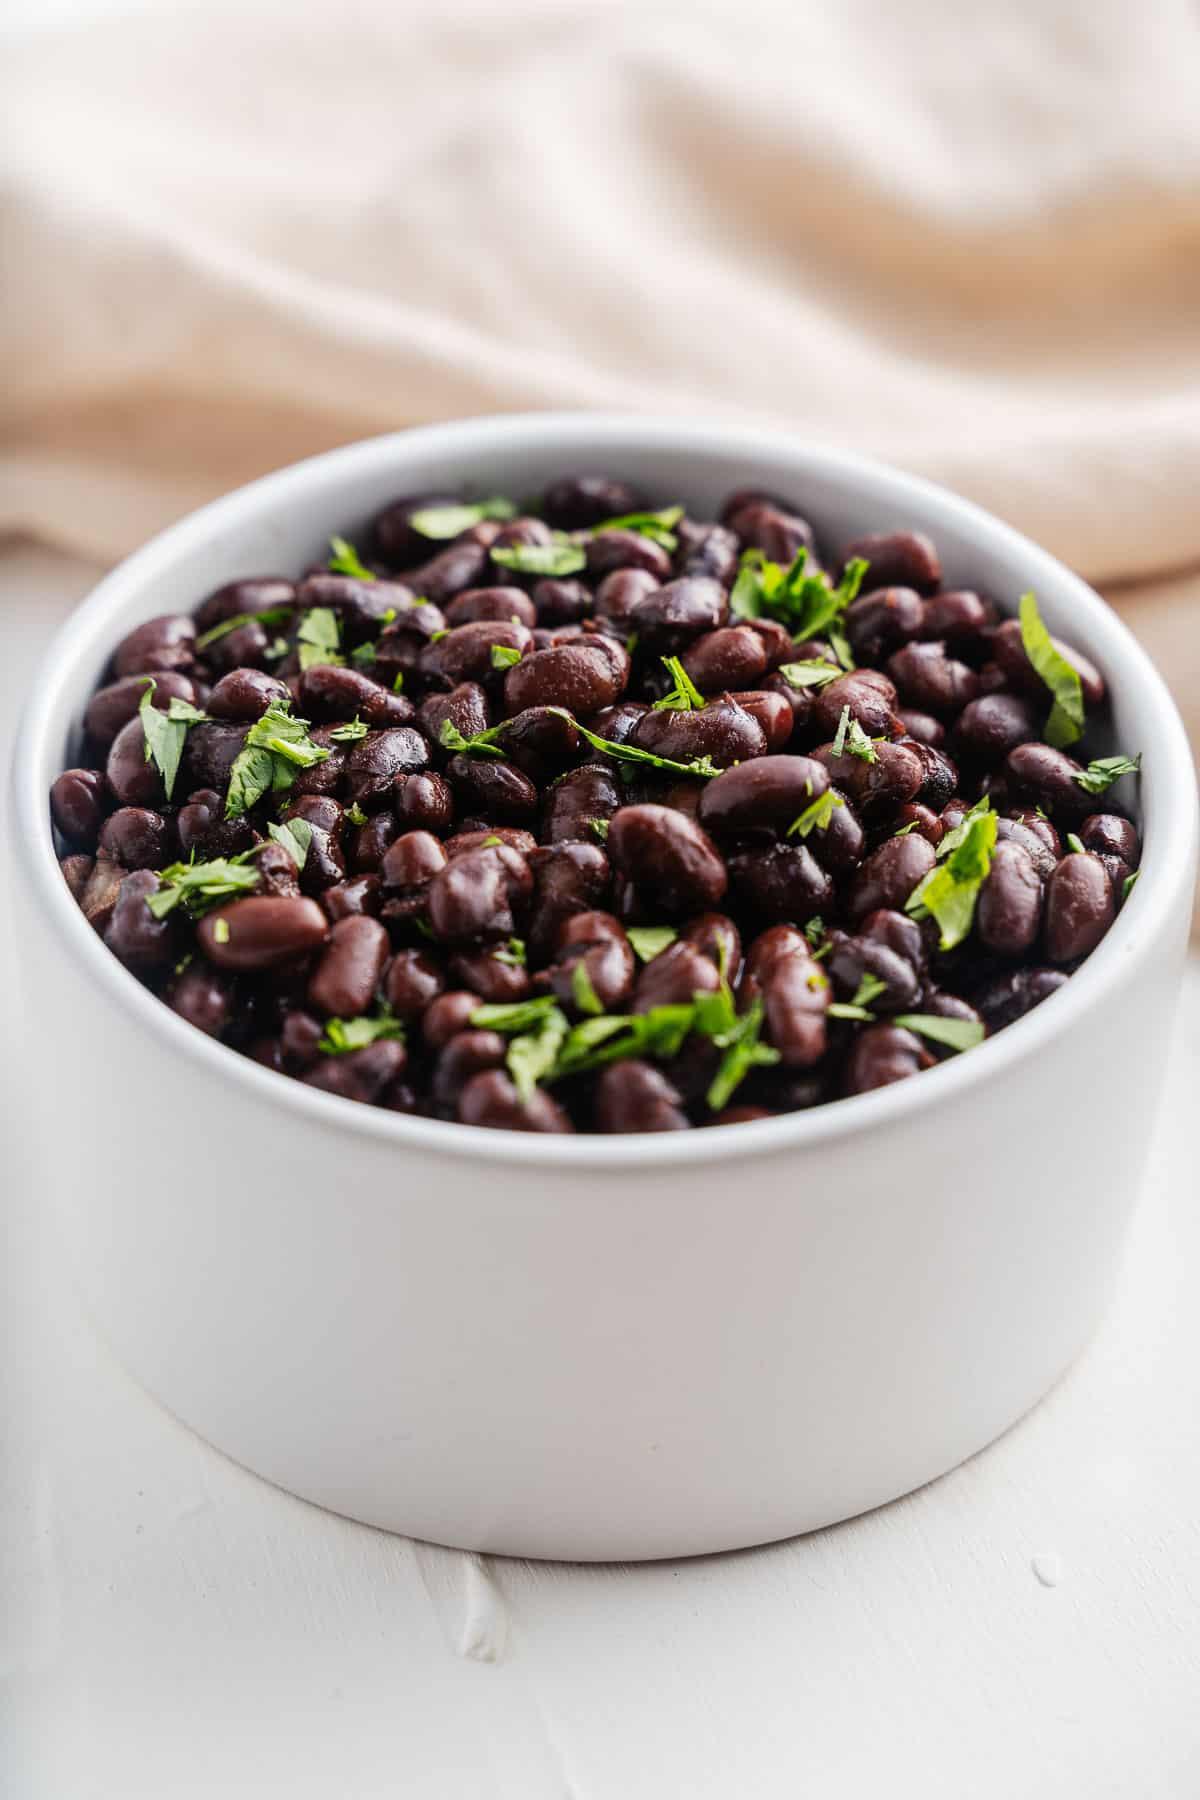 Black Beans in a Bowl With Cilantro